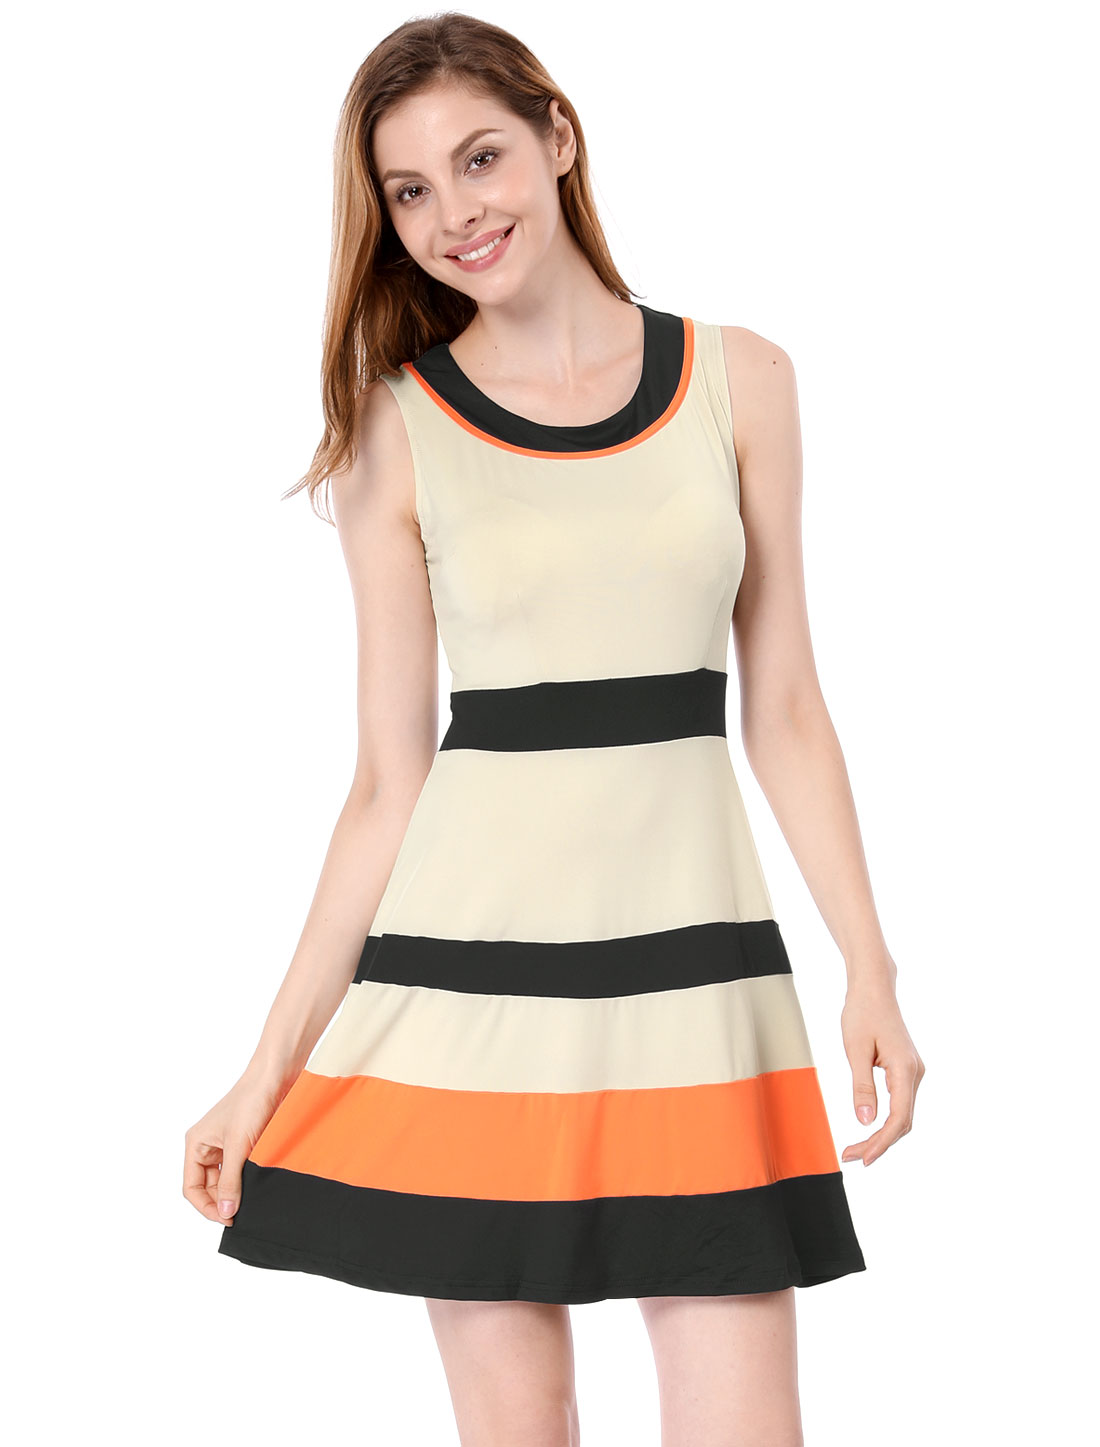 Women Color Block Sleeveless Round Neck A Line Dress Beige M